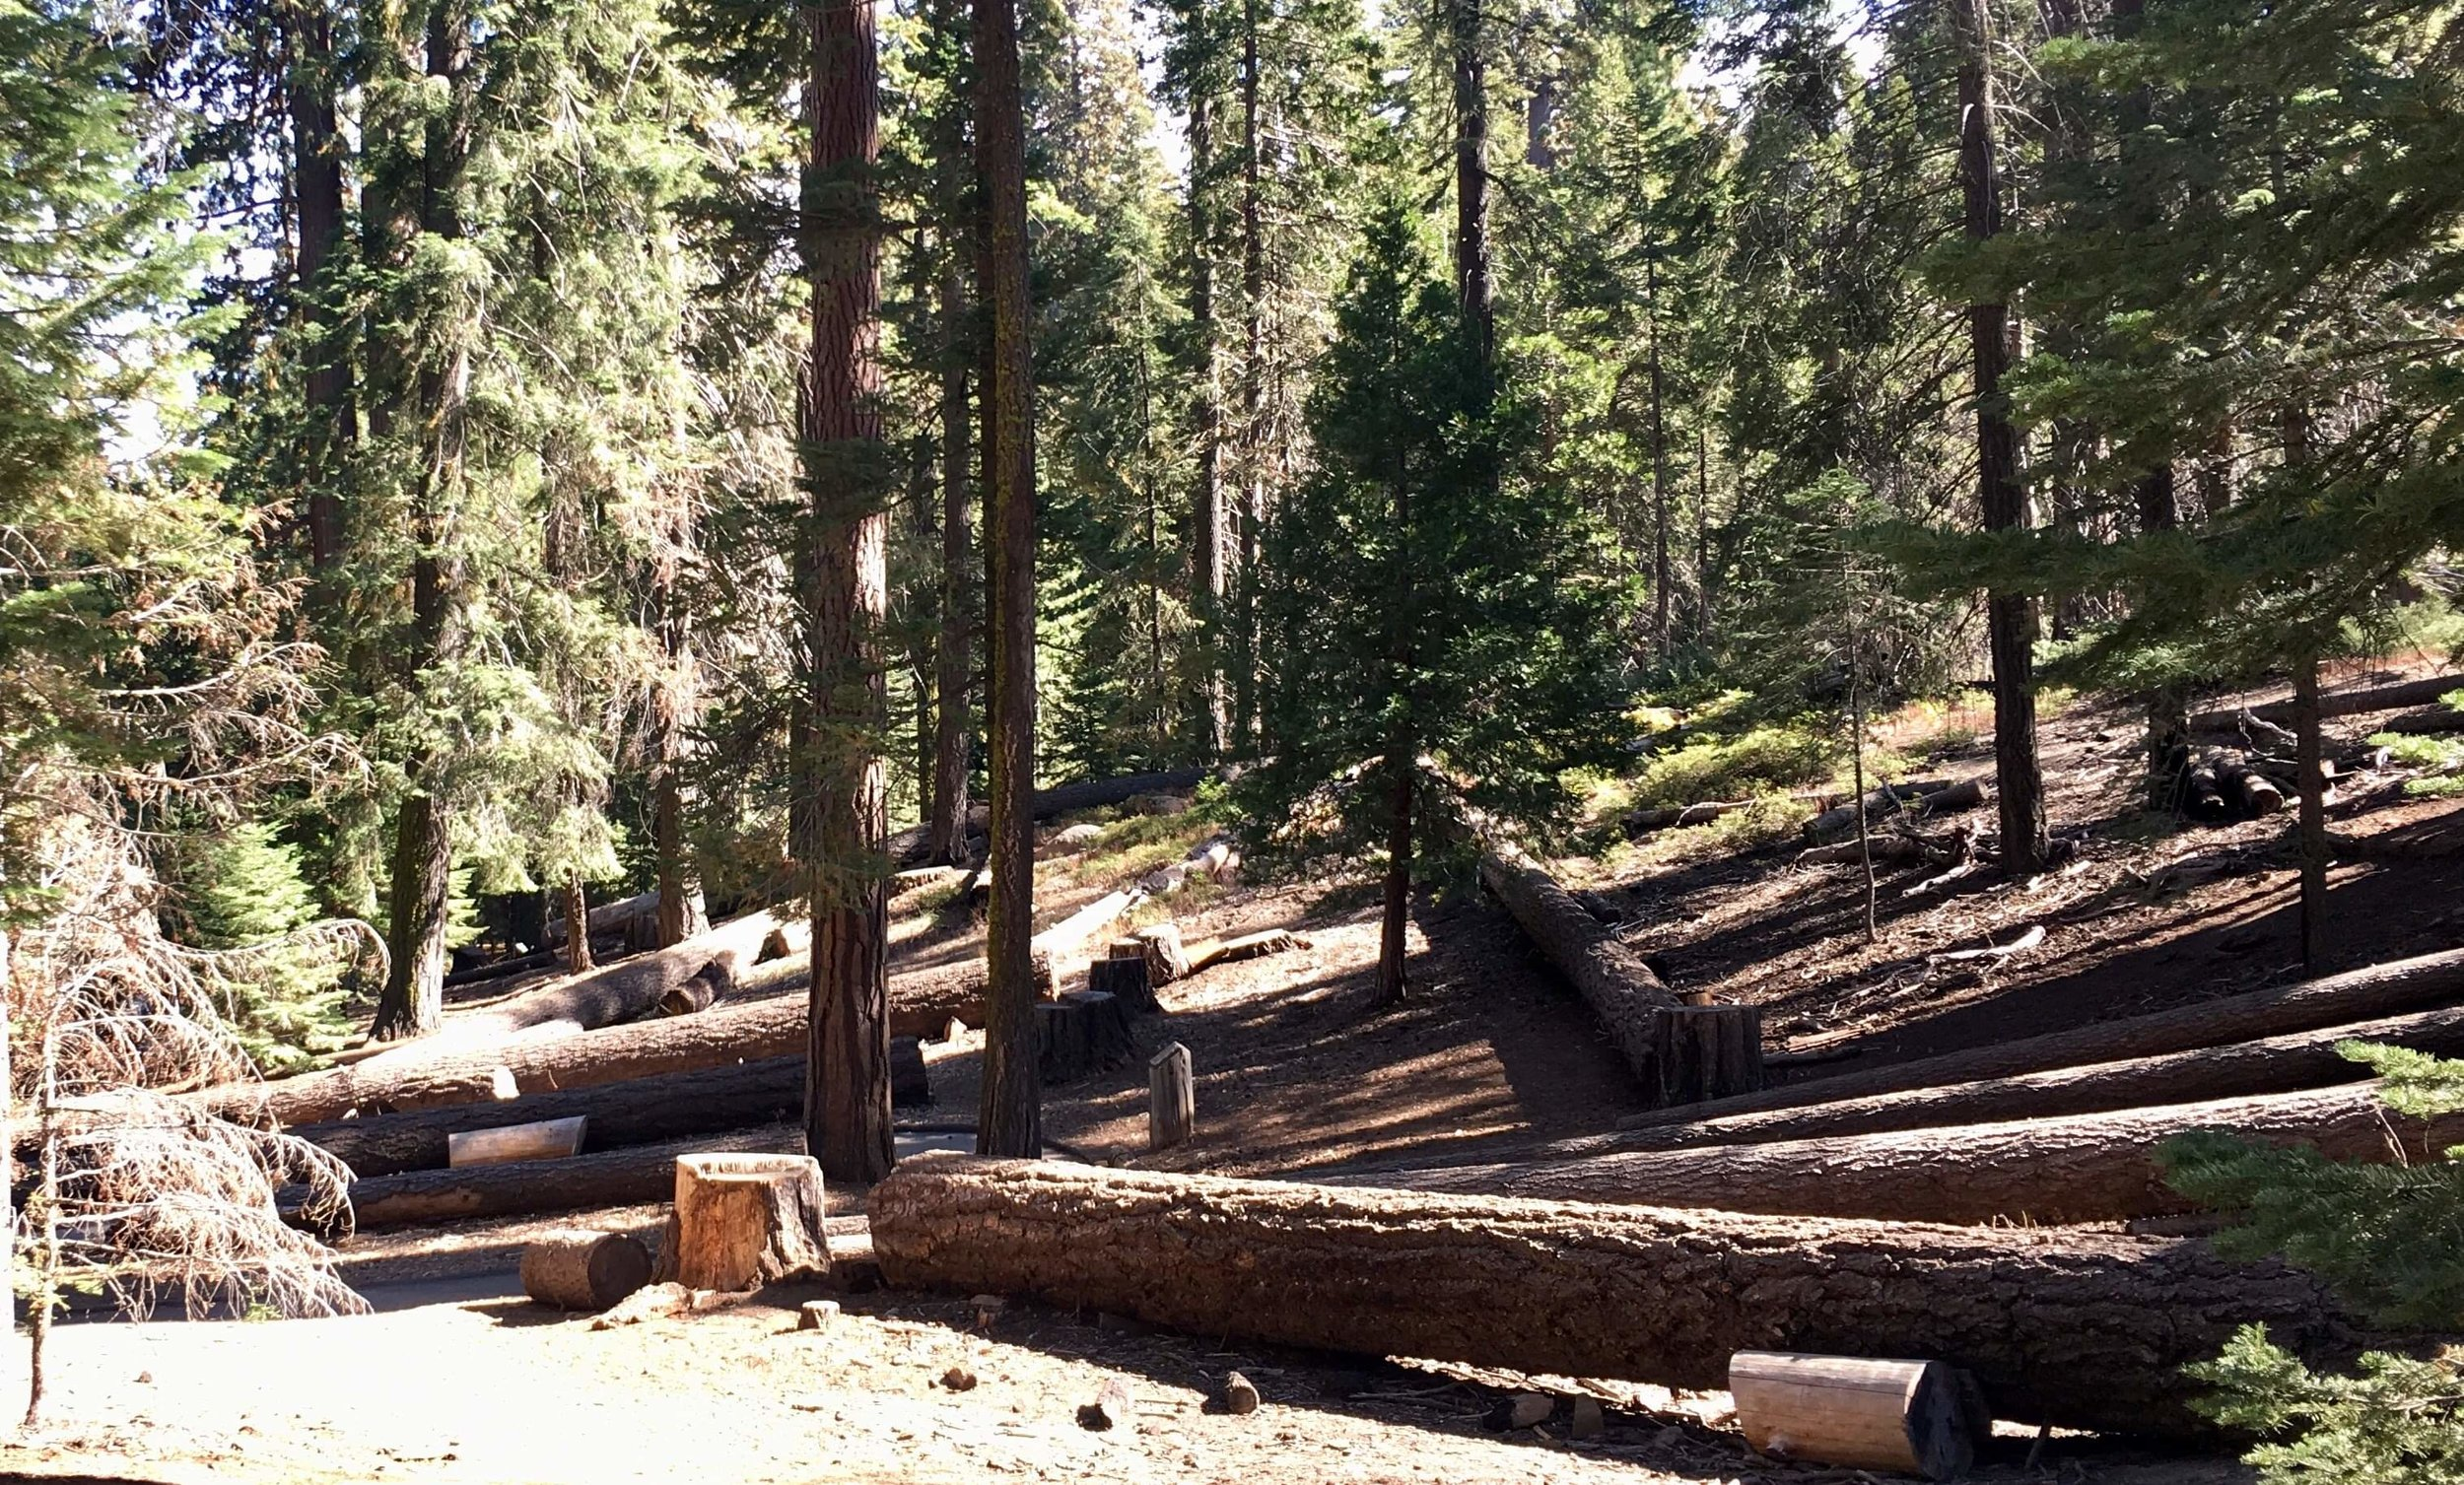 The cycle of life requires periodic forest fires for new Sequoia seeds to germinate